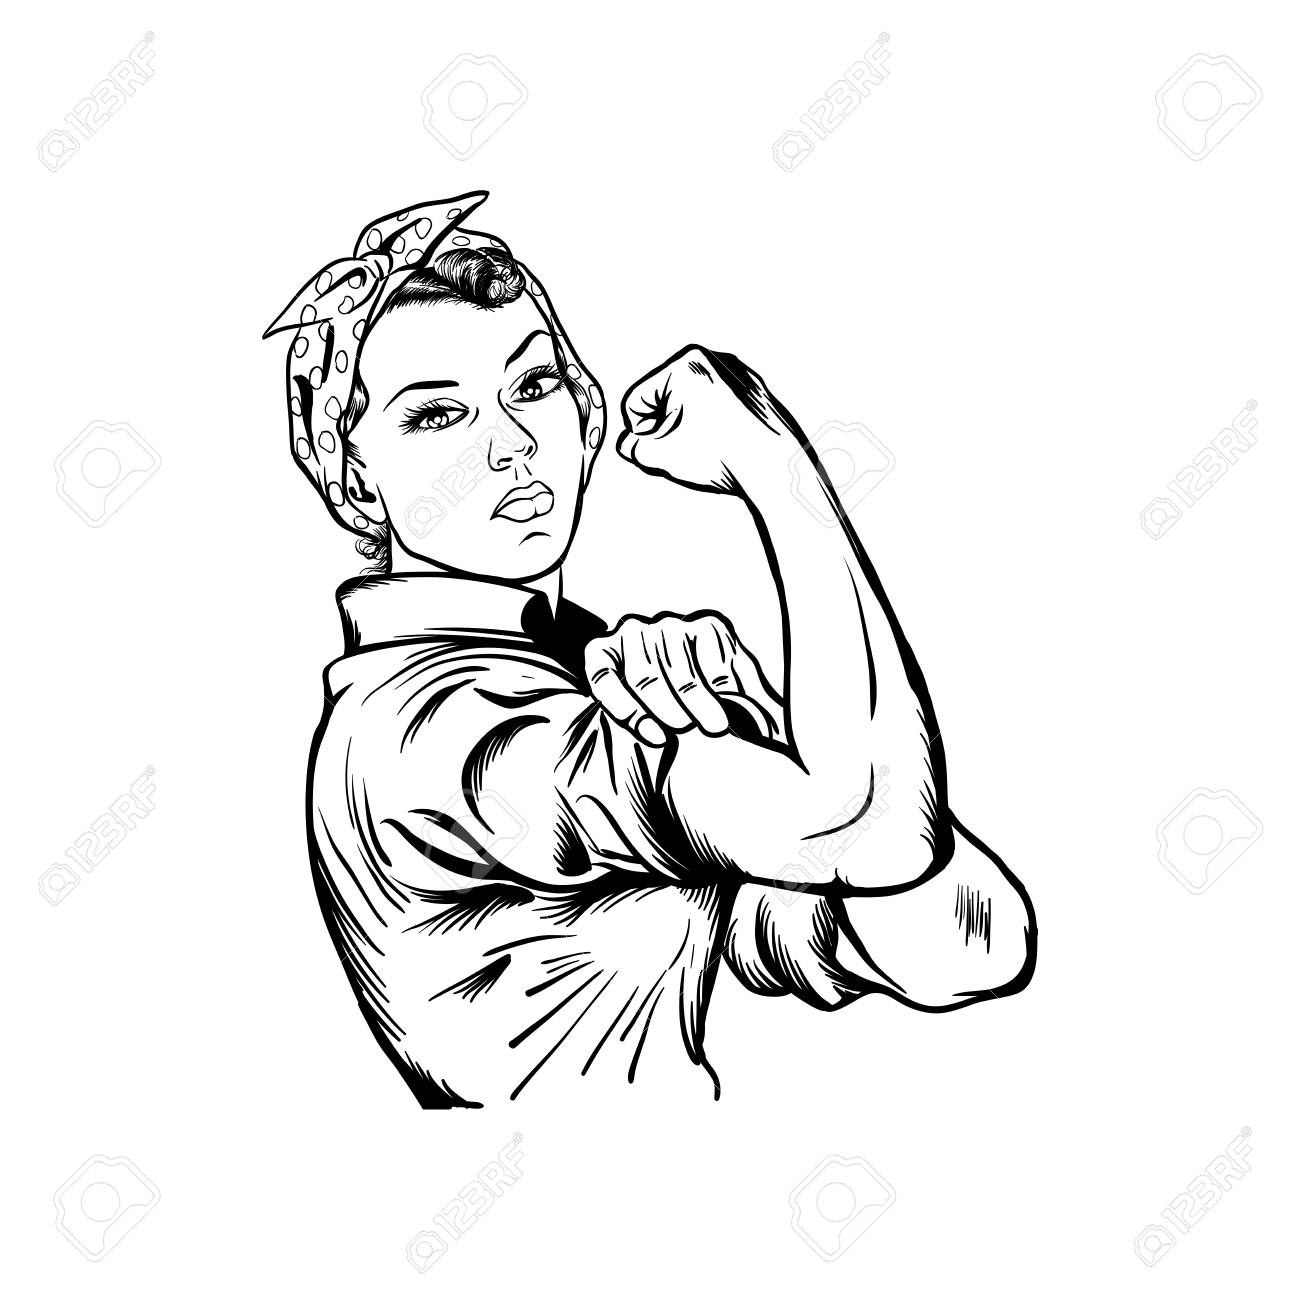 Rosie the riveter vector illustration - international women's day vector, yes we can vector isolated on white background - 118116657